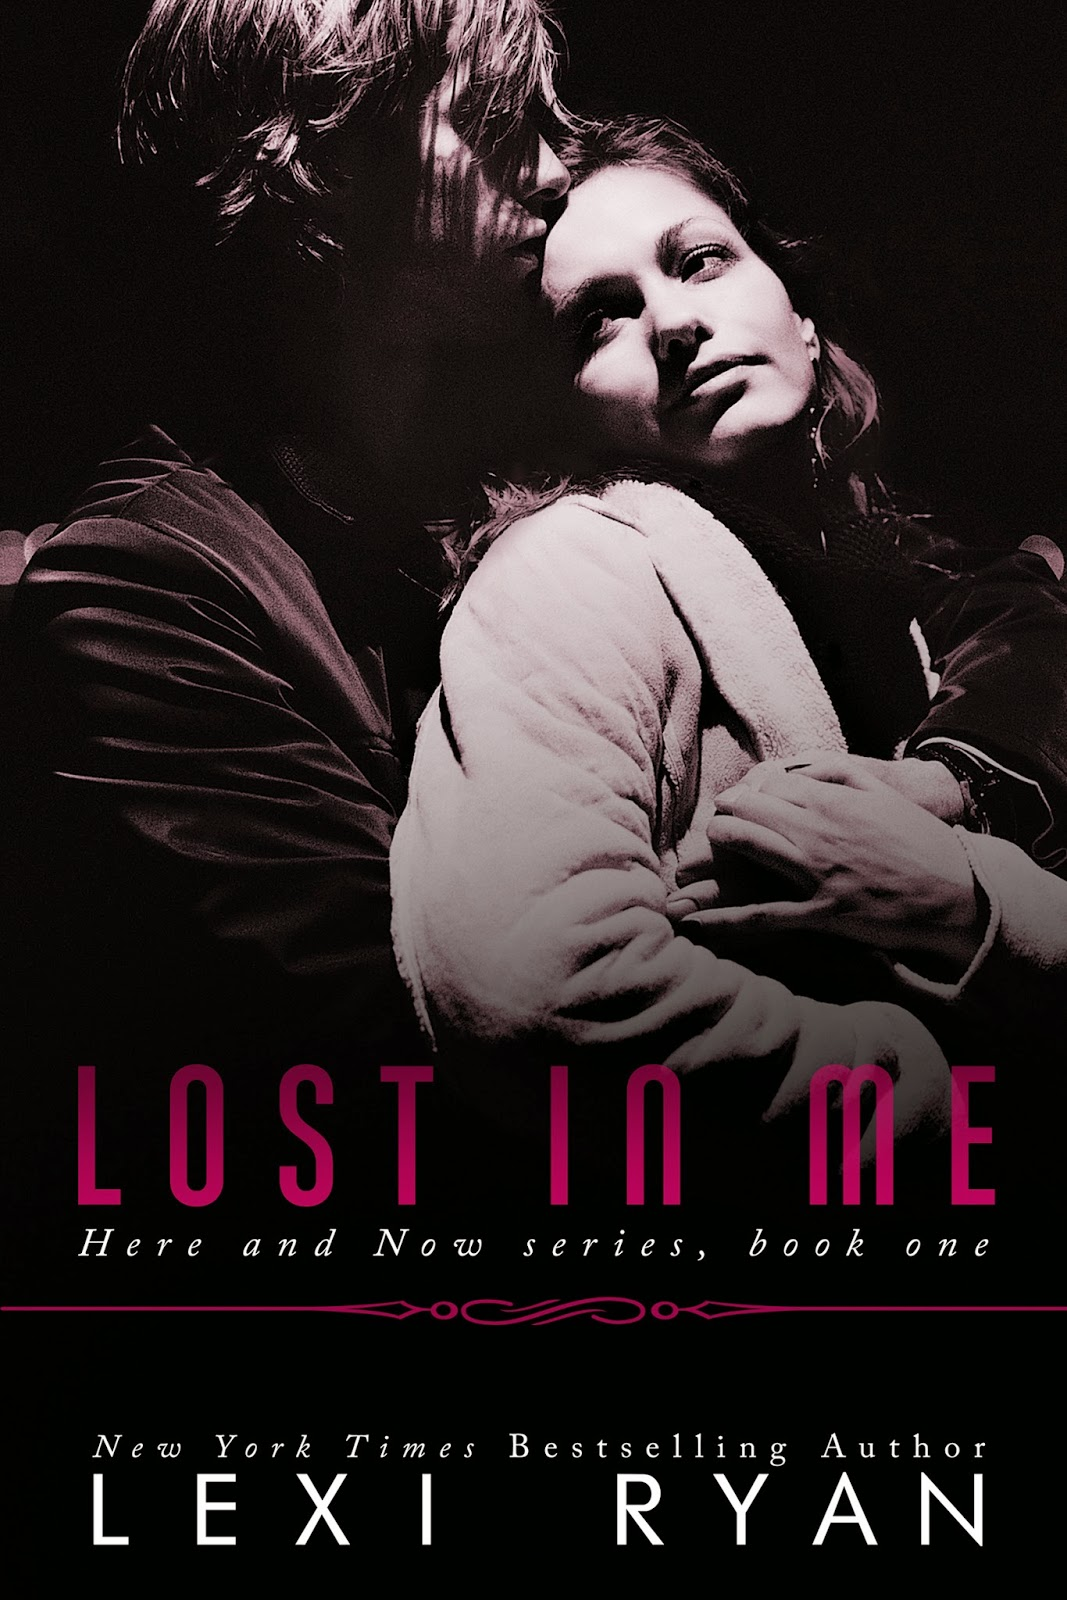 http://gabicreads.blogspot.com/2014/04/release-week-blitz-lost-in-me-by-lexi.html